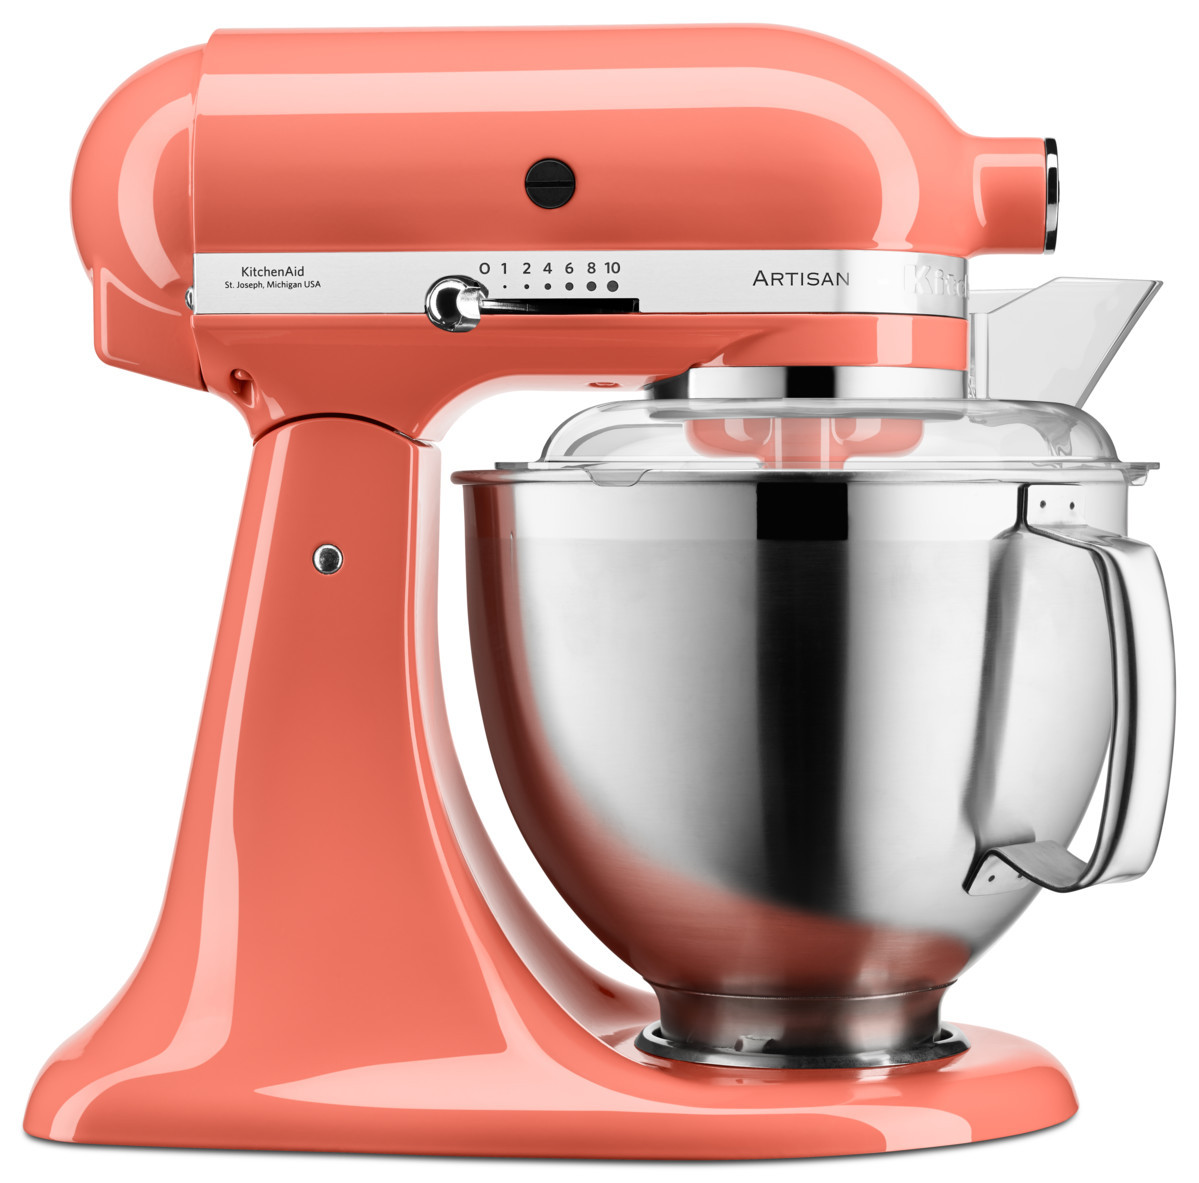 KitchenAid Küchenmaschine 5KSM185PS